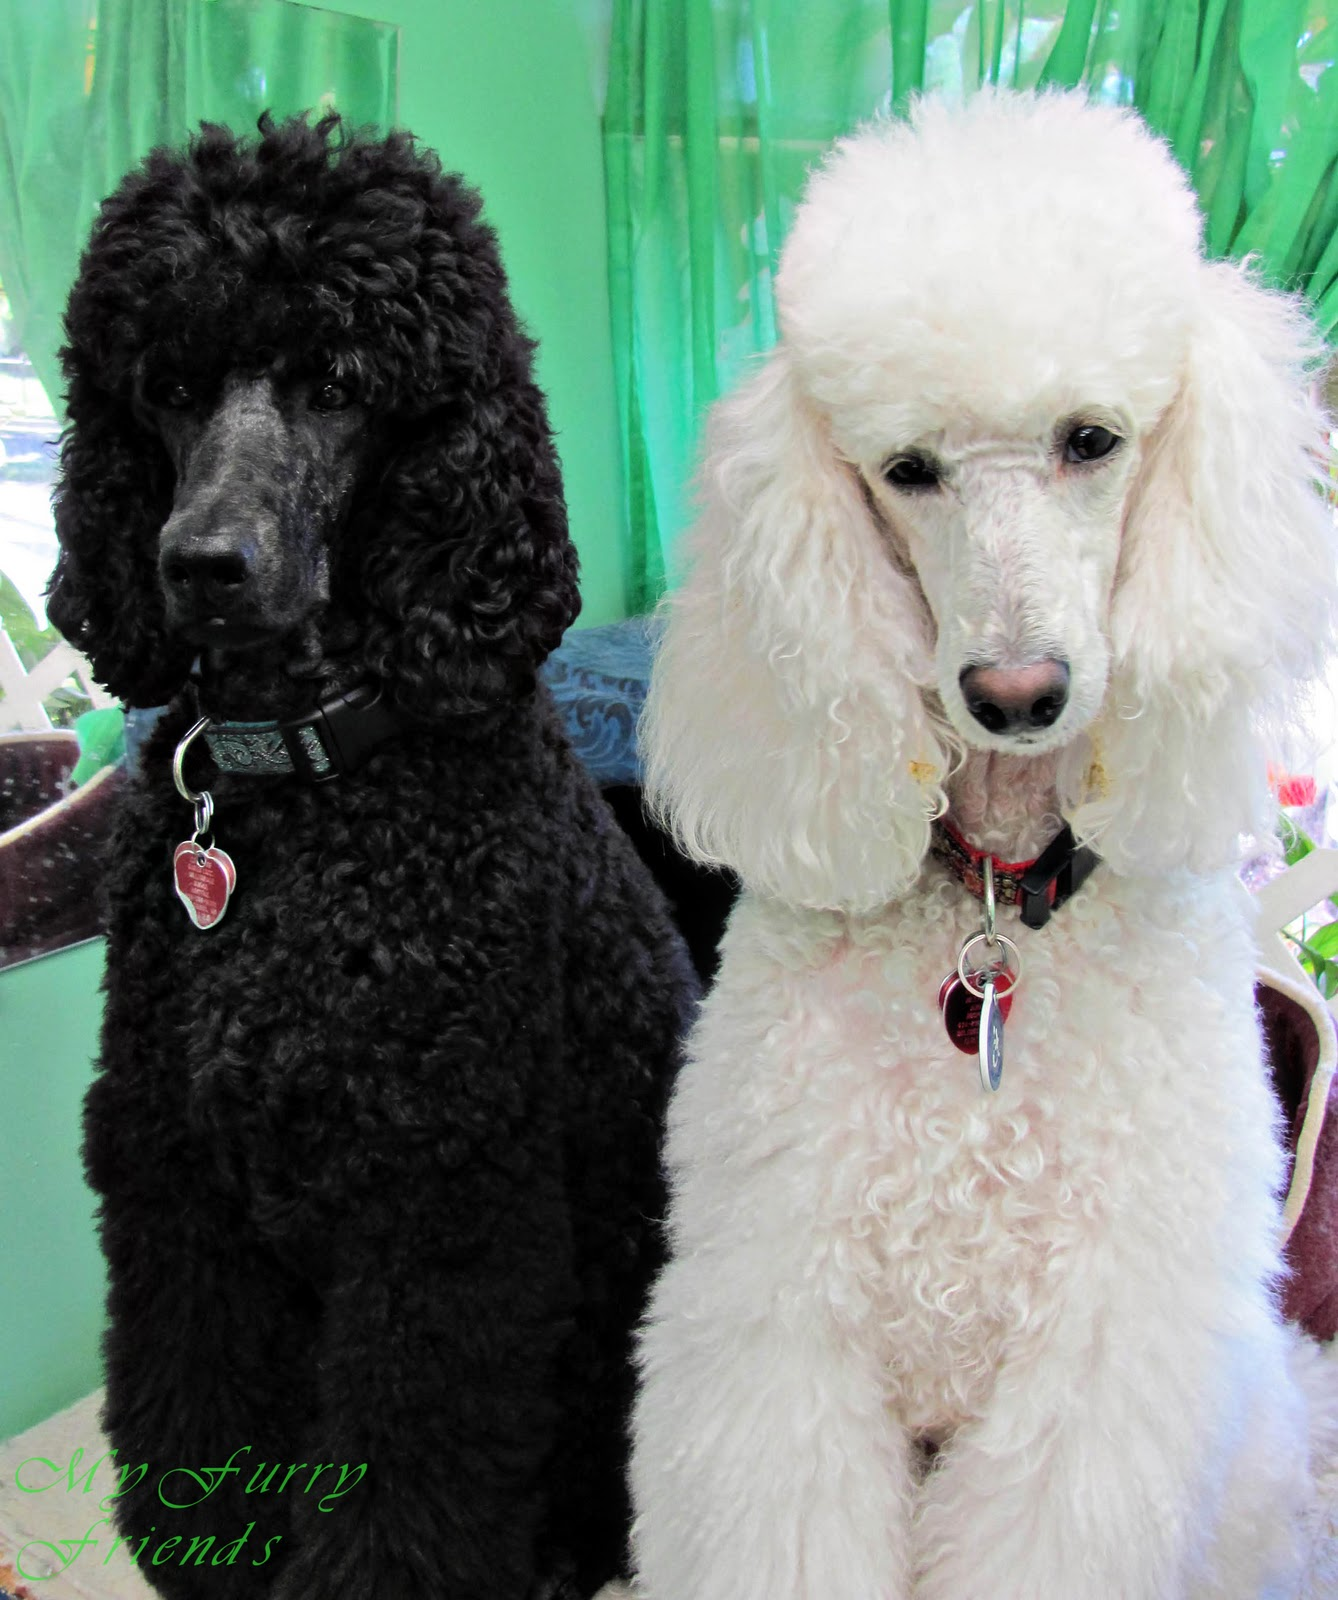 Standard poodle haircuts or of unless soft haircuts standard poodle - I Don T See Where Any Of The Doodles On This Blog Look Like My Poodles